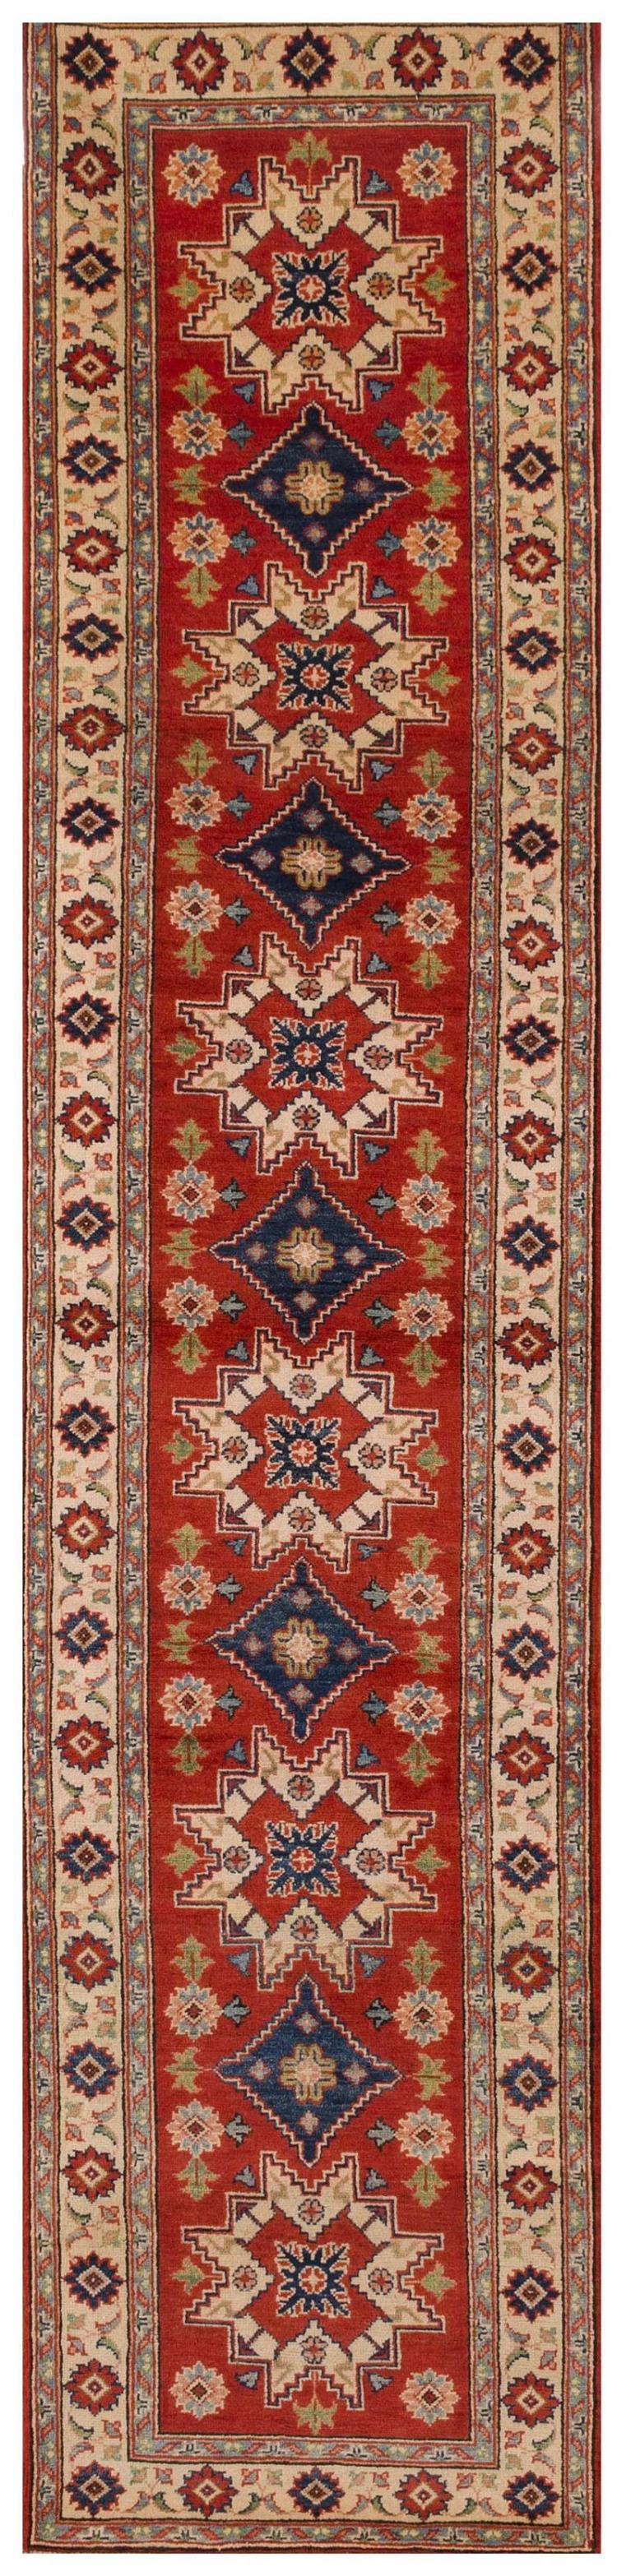 """ORIENTAL RUG: KAZAK DESIGN RUNNER 2''9"""" x 13''0"""" Red and ivory Lesghi stars alternate with a blue diamond-shaped medallion down the ce."""